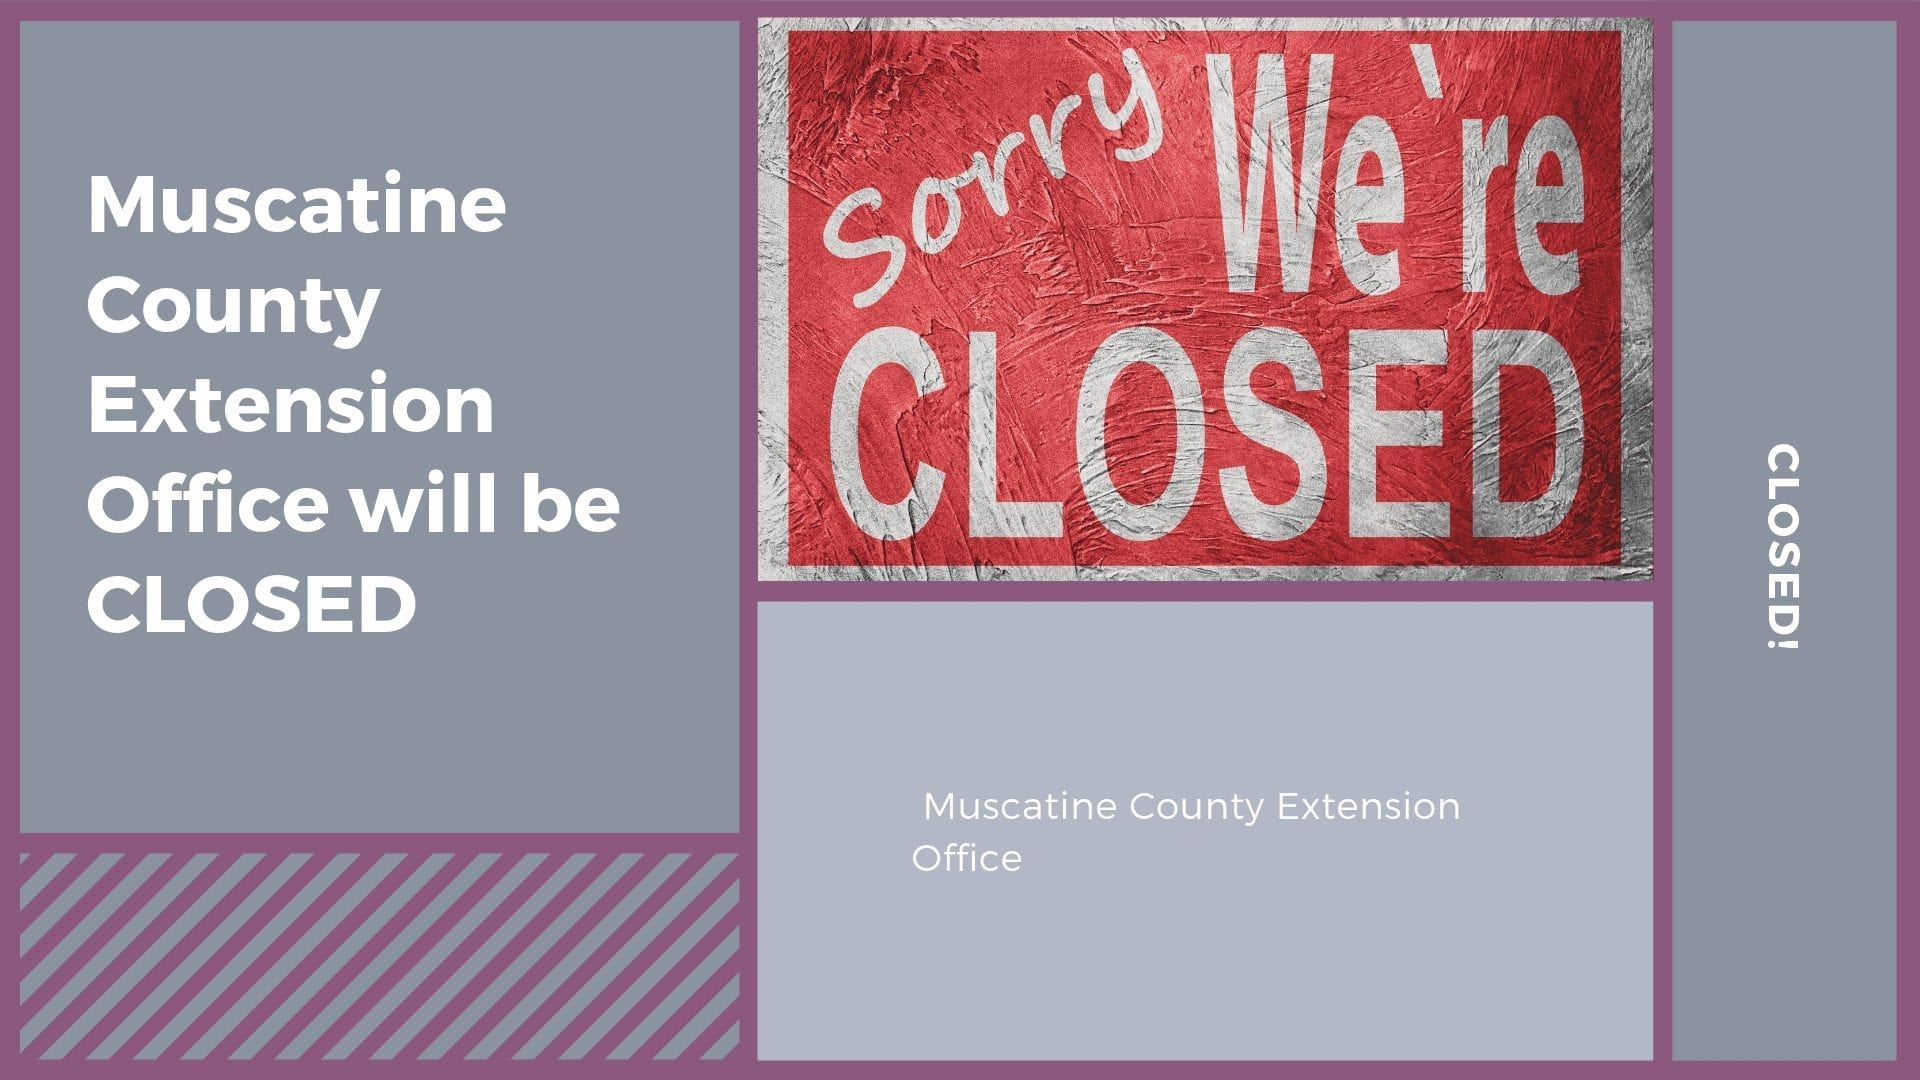 Muscatine County Extension Office will be CLOSED